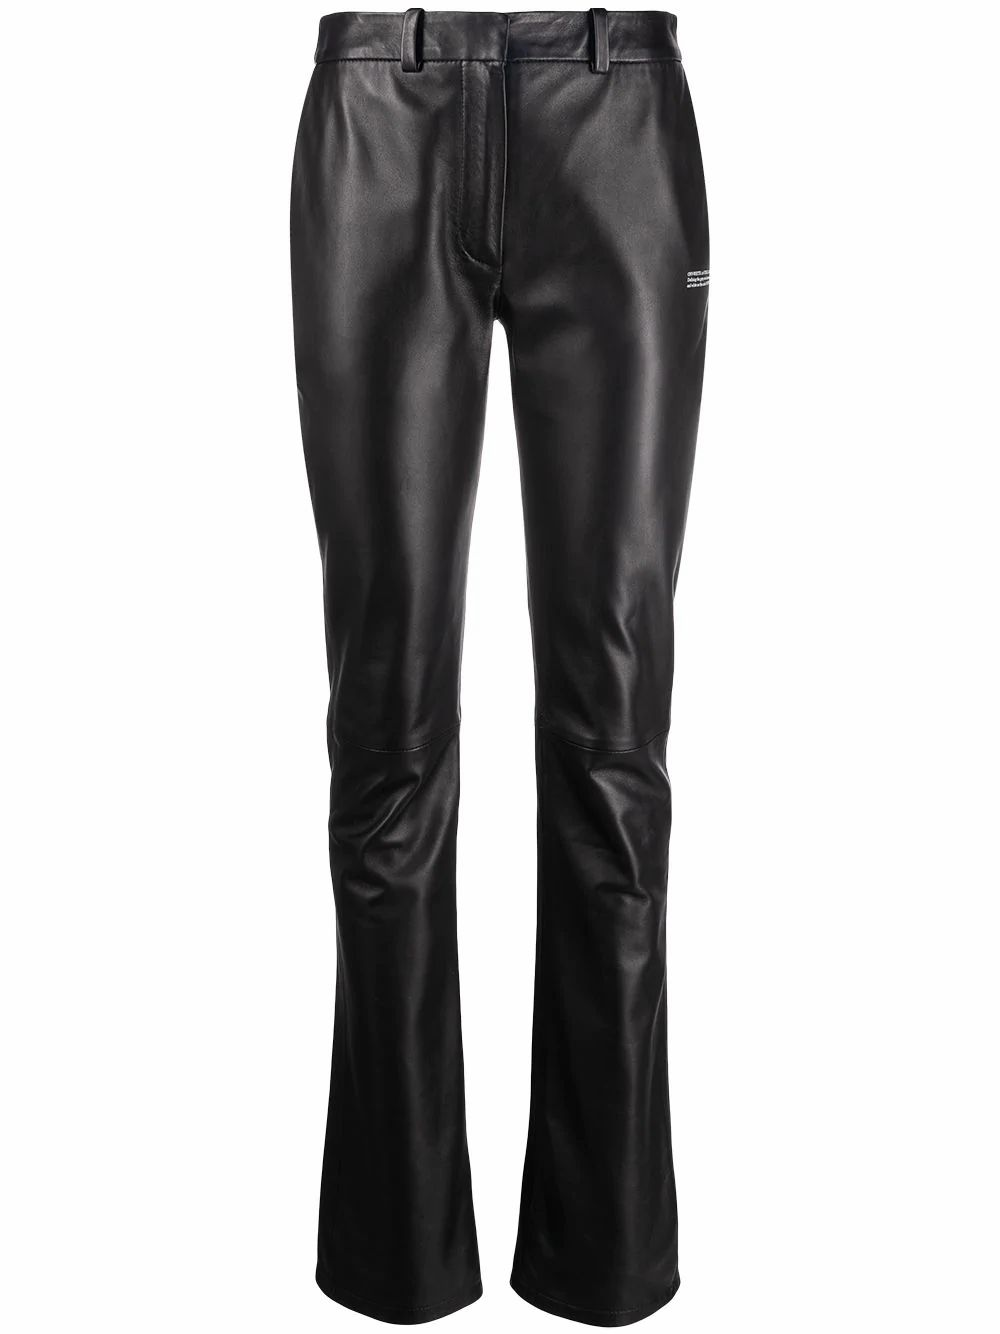 Off-White Leathers OFF-WHITE WOMEN'S OWJB014R21LEA0011000 BLACK LEATHER PANTS